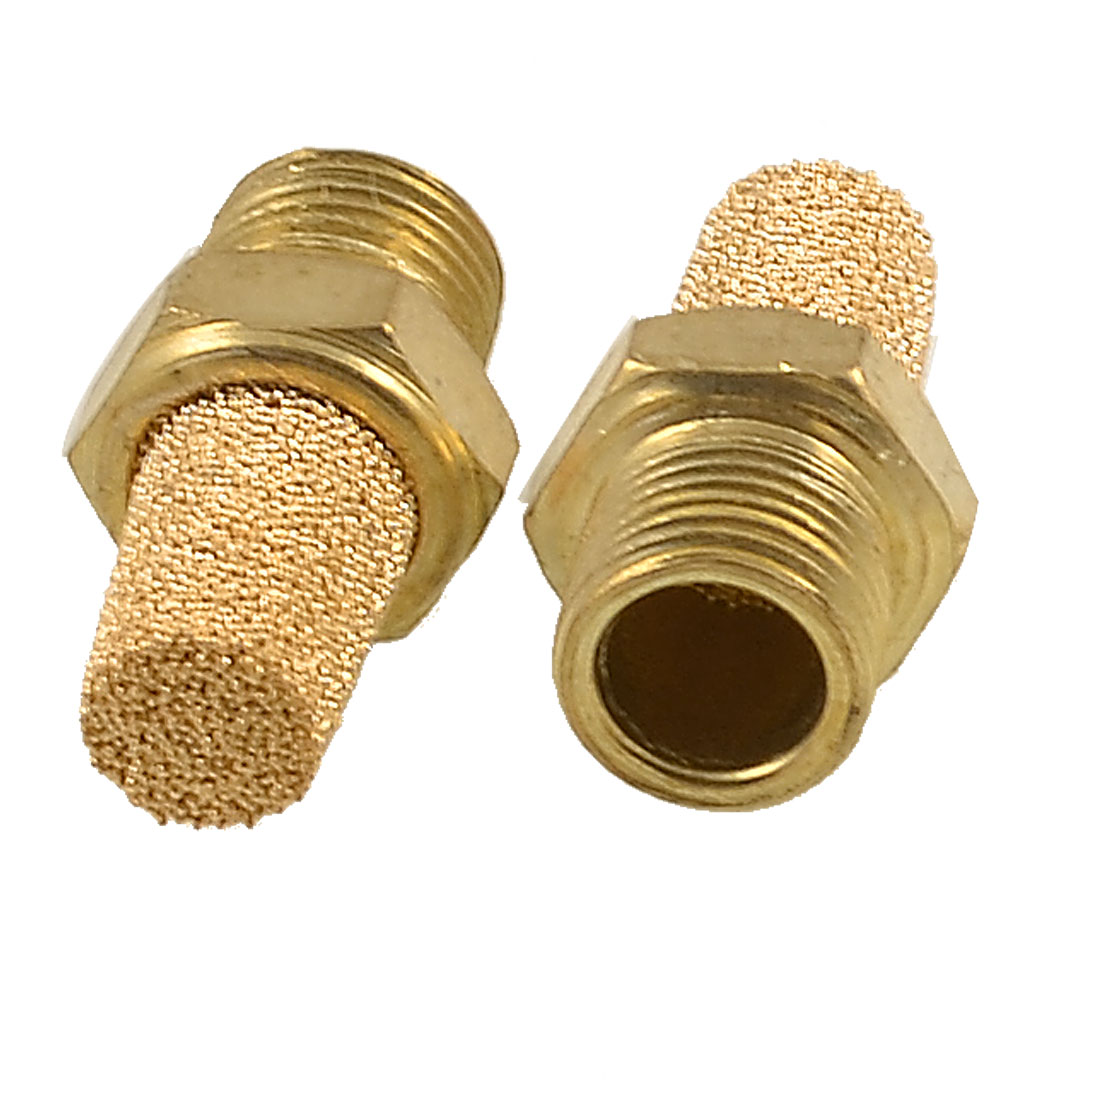 "2pcs 1/8"" PT Male Thread Brass Pneumatic Valve Muffler Silencers"